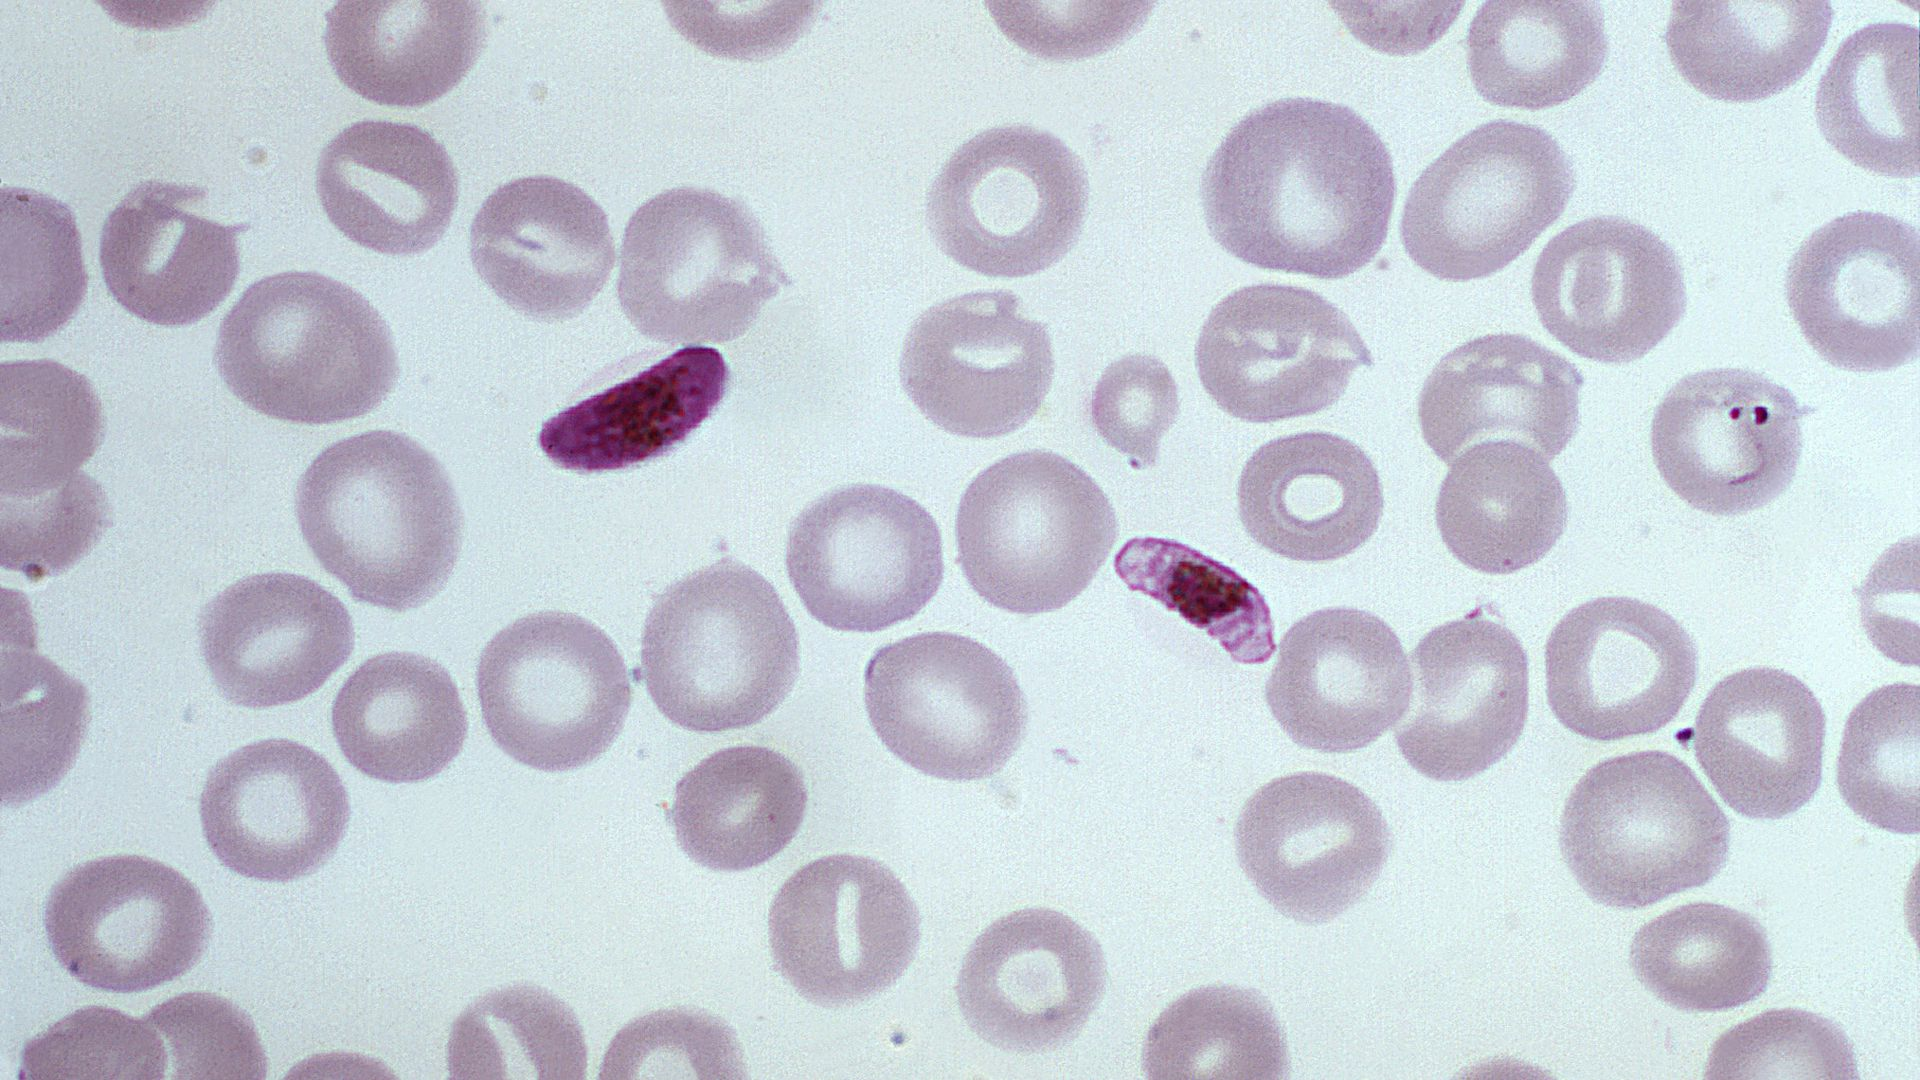 The Plasmodium falciparum parasite that causes malaria.